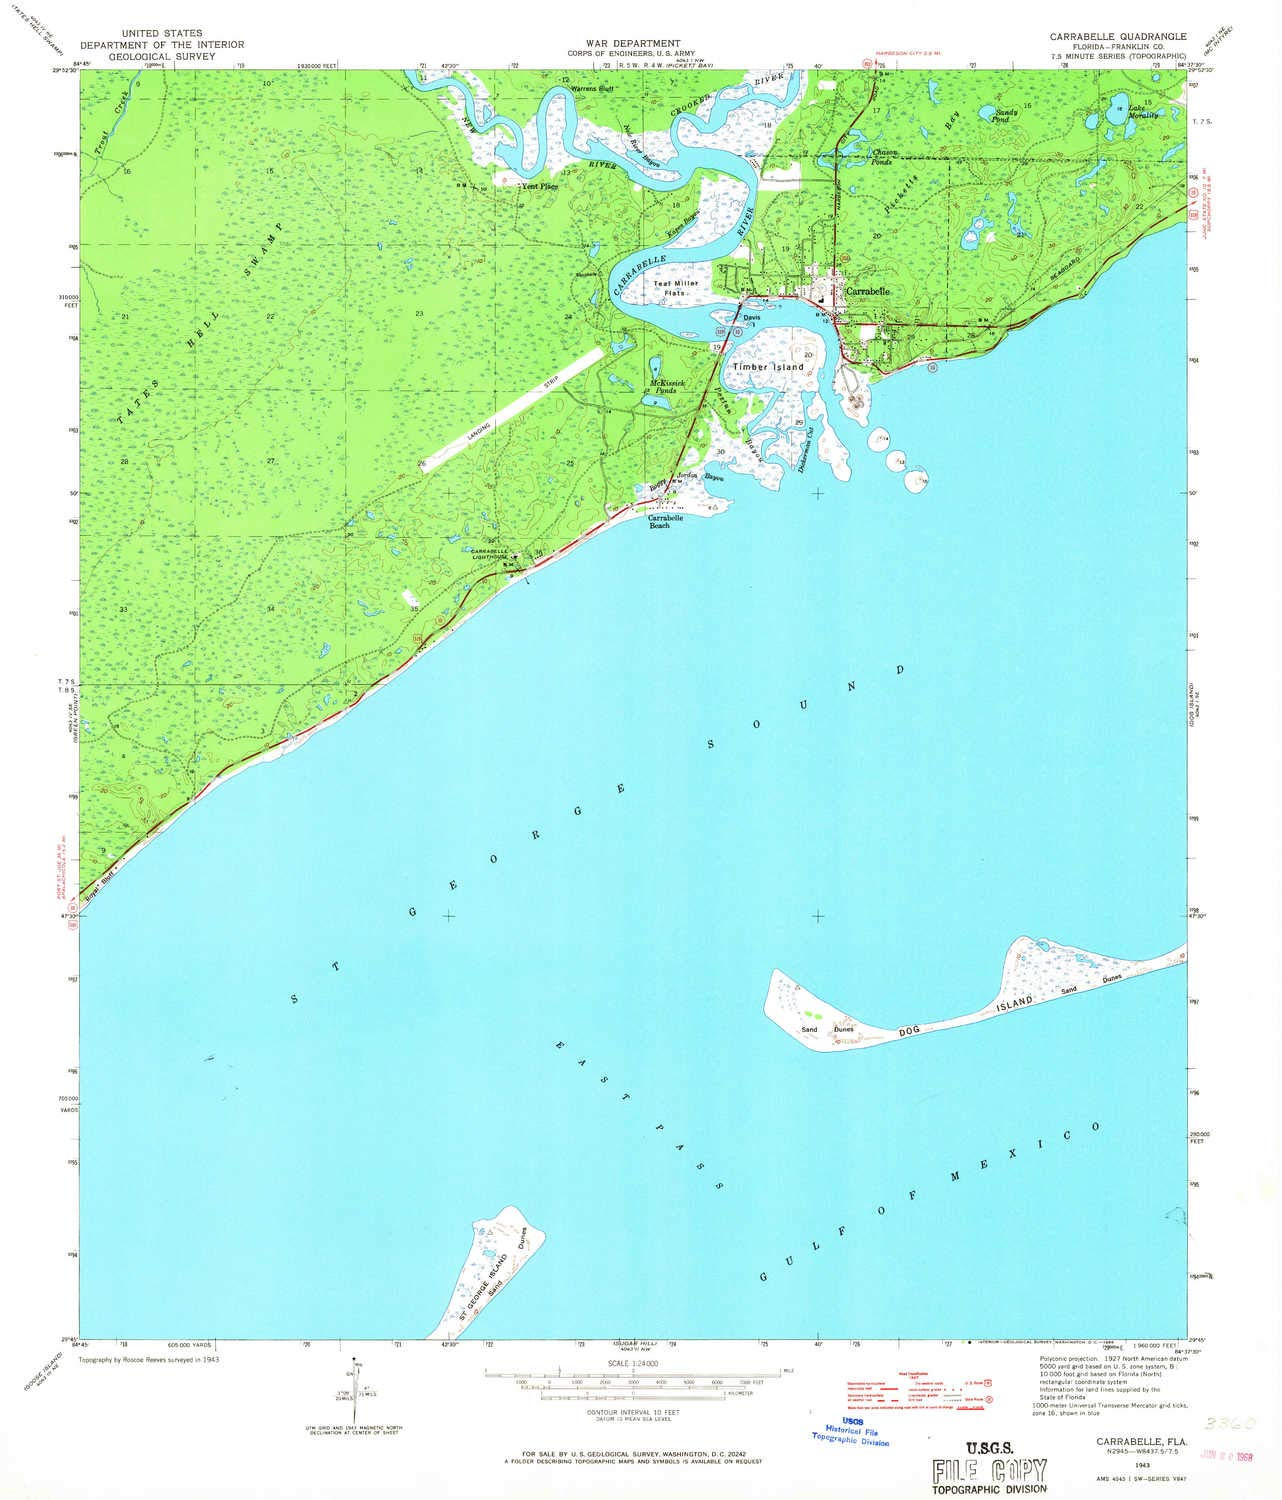 Amazon.com : YellowMaps Carrabelle FL topo map, 1:24000 ... on bradfordville florida map, pascagoula florida map, sharpes florida map, brookridge florida map, evinston florida map, sumatra florida map, molino florida map, pensacola bay florida map, campbellton florida map, warrington florida map, vamo florida map, baton rouge florida map, north carolina florida map, st. johns river florida map, hypoluxo florida map, south daytona florida map, st. george island state park florida map, pretty bayou florida map, mobile florida map, massachusetts florida map,